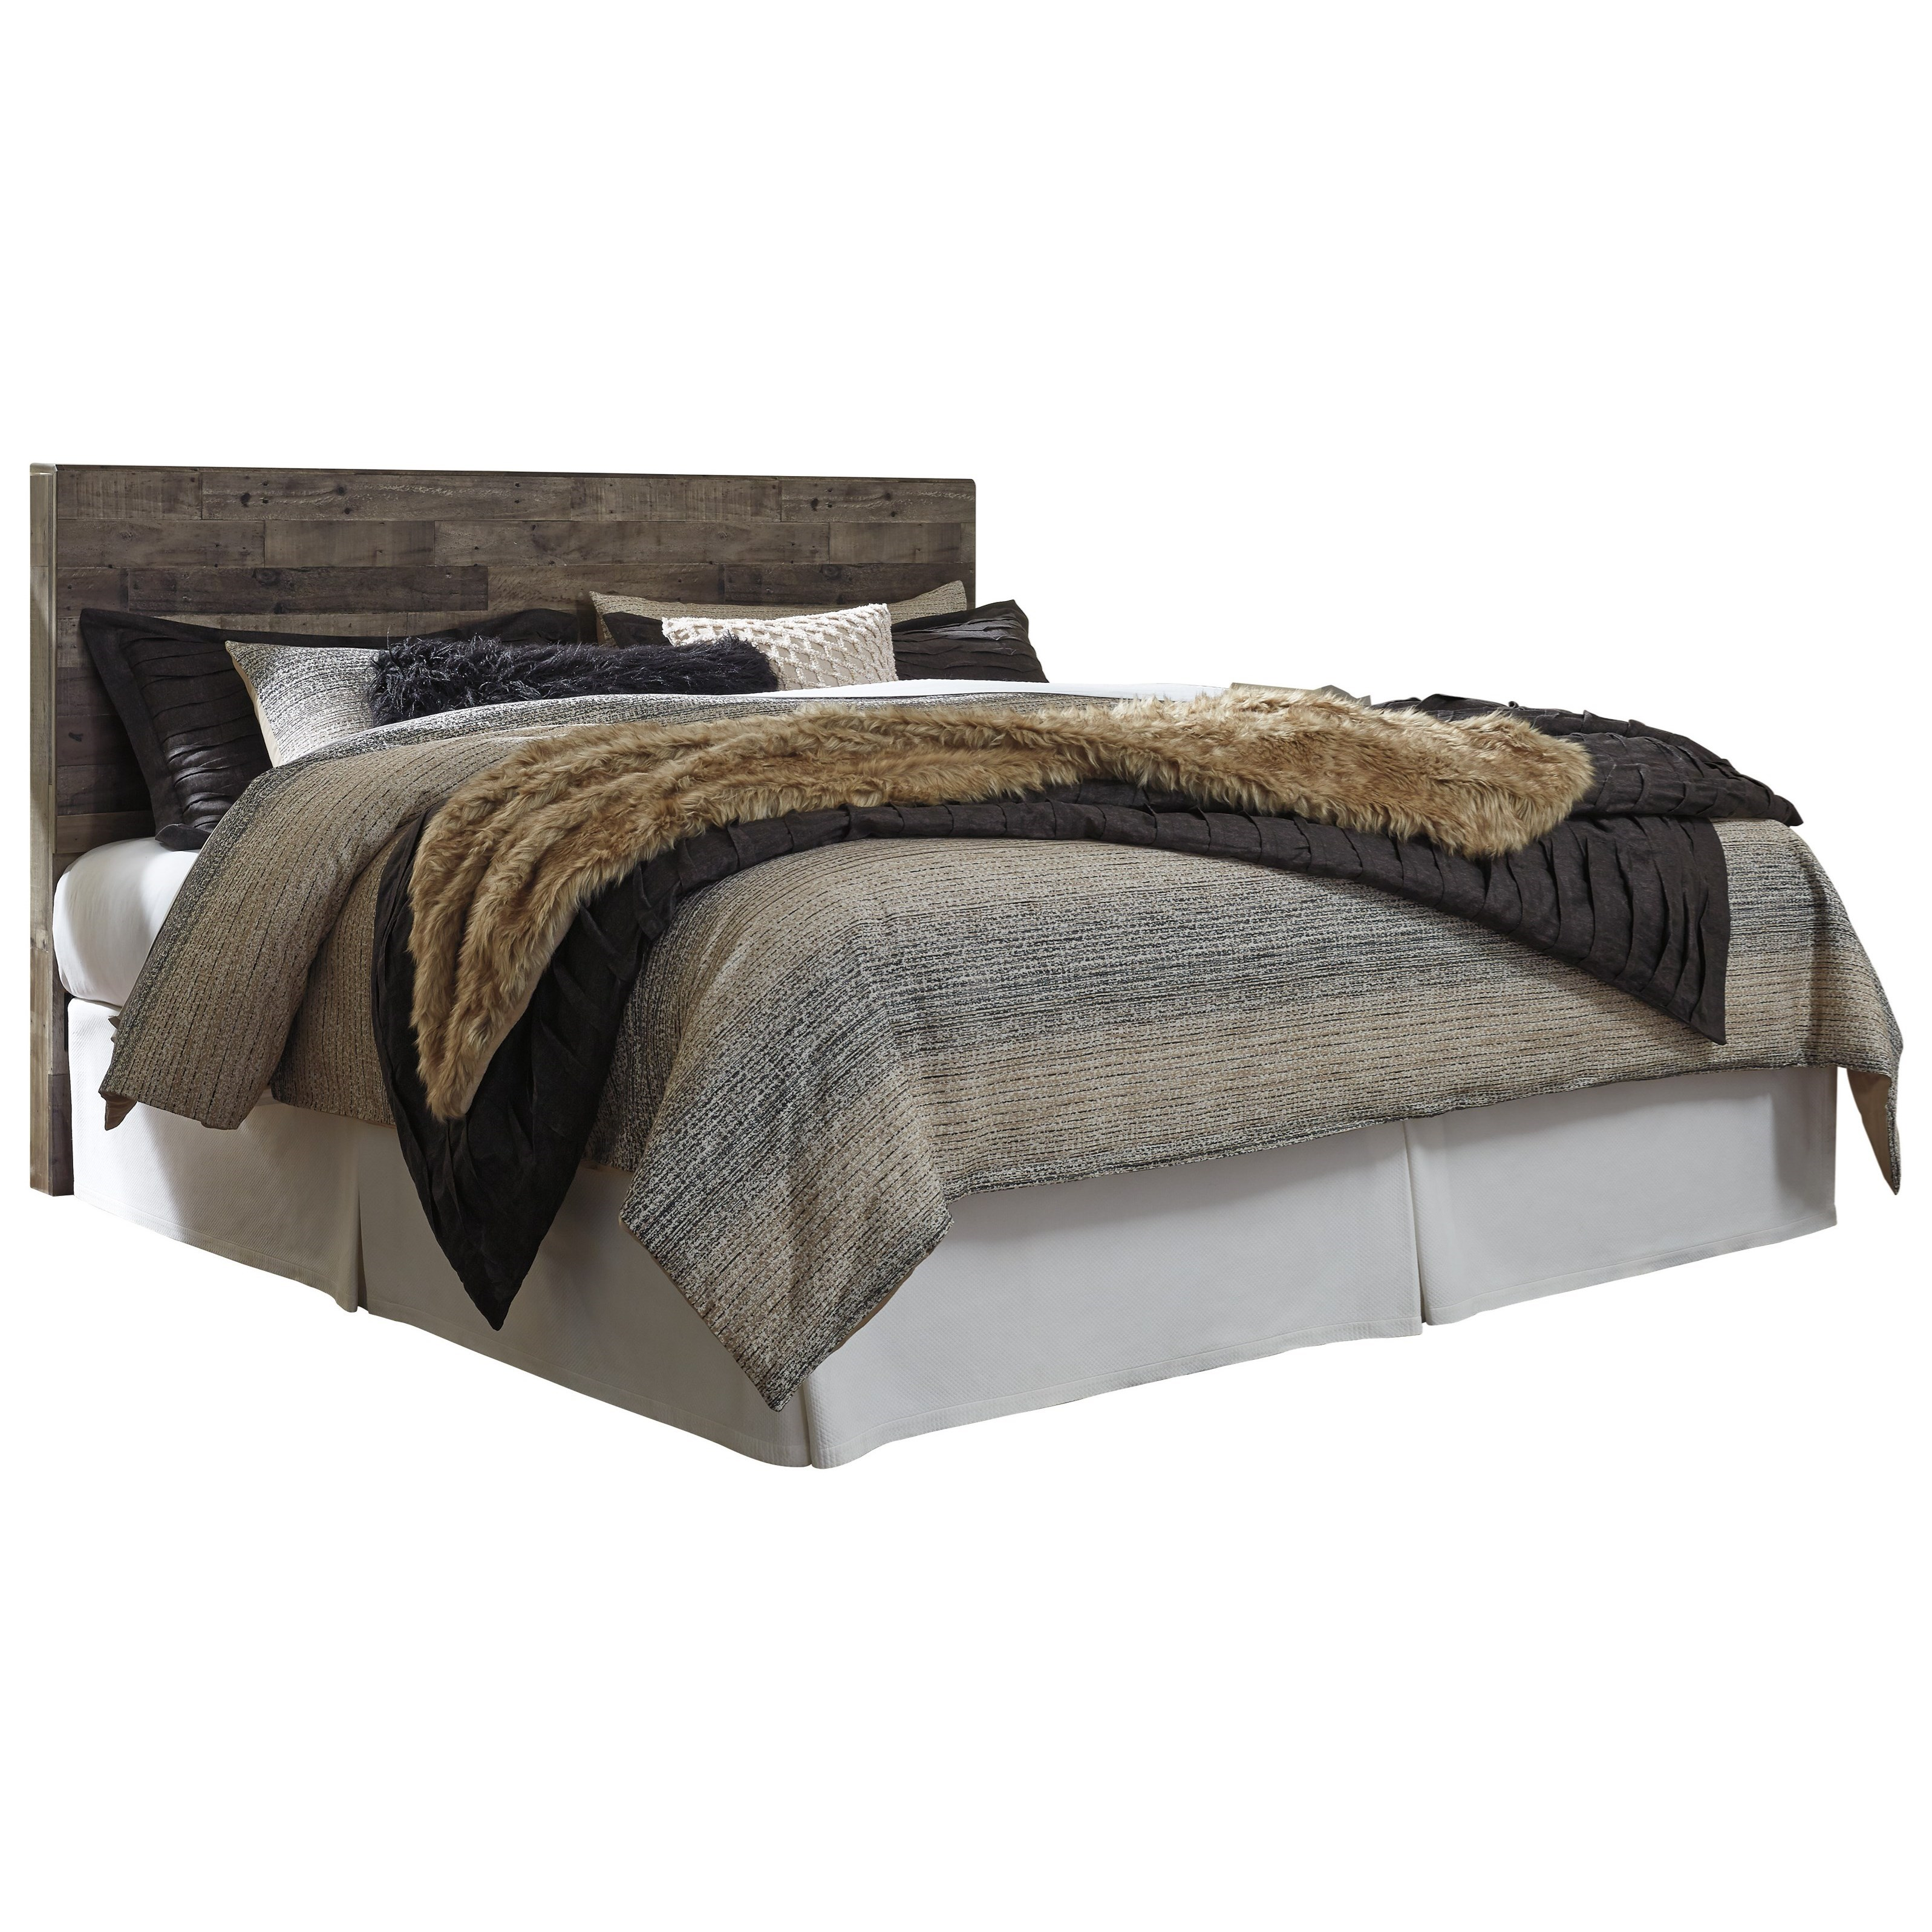 Derekson King Panel Headboard by Benchcraft at Zak's Warehouse Clearance Center